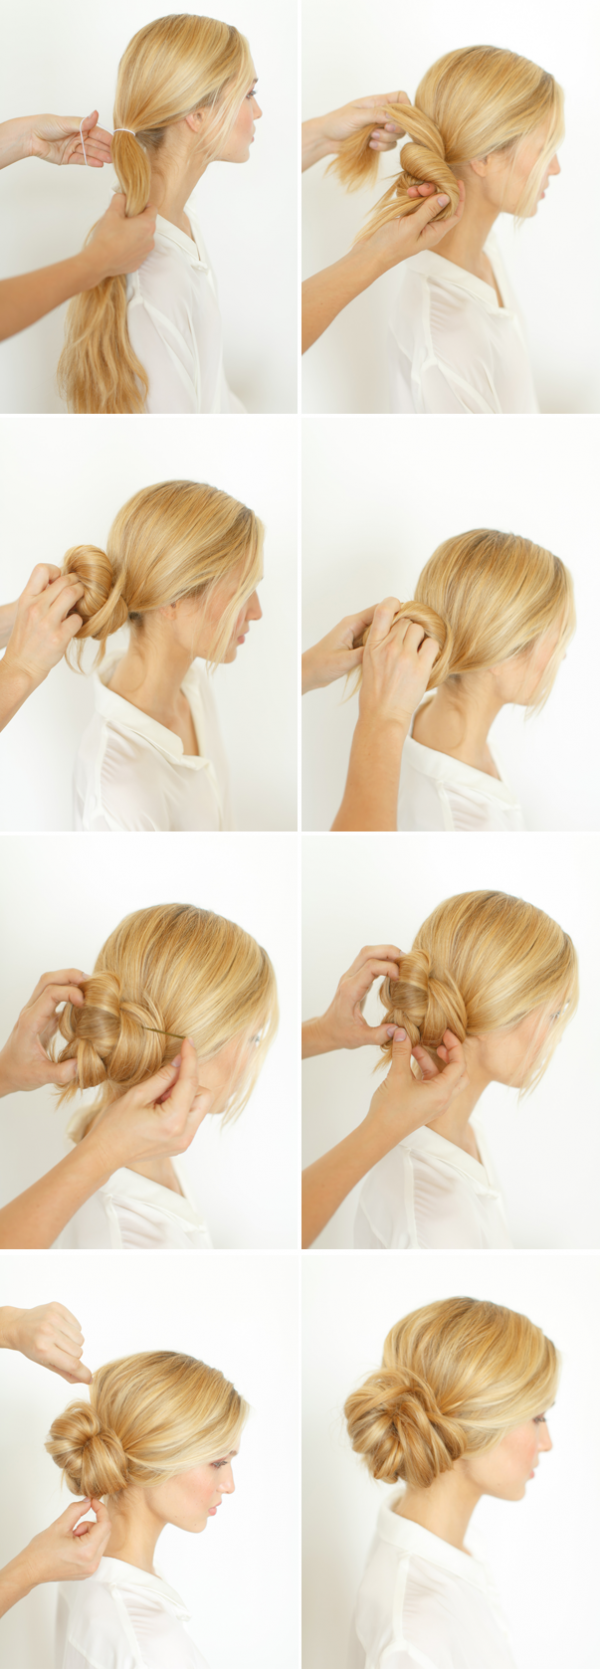 diy-low-bun-hair-tutorial-bryce-covey-amy-clarke-600x1669 (Copy)